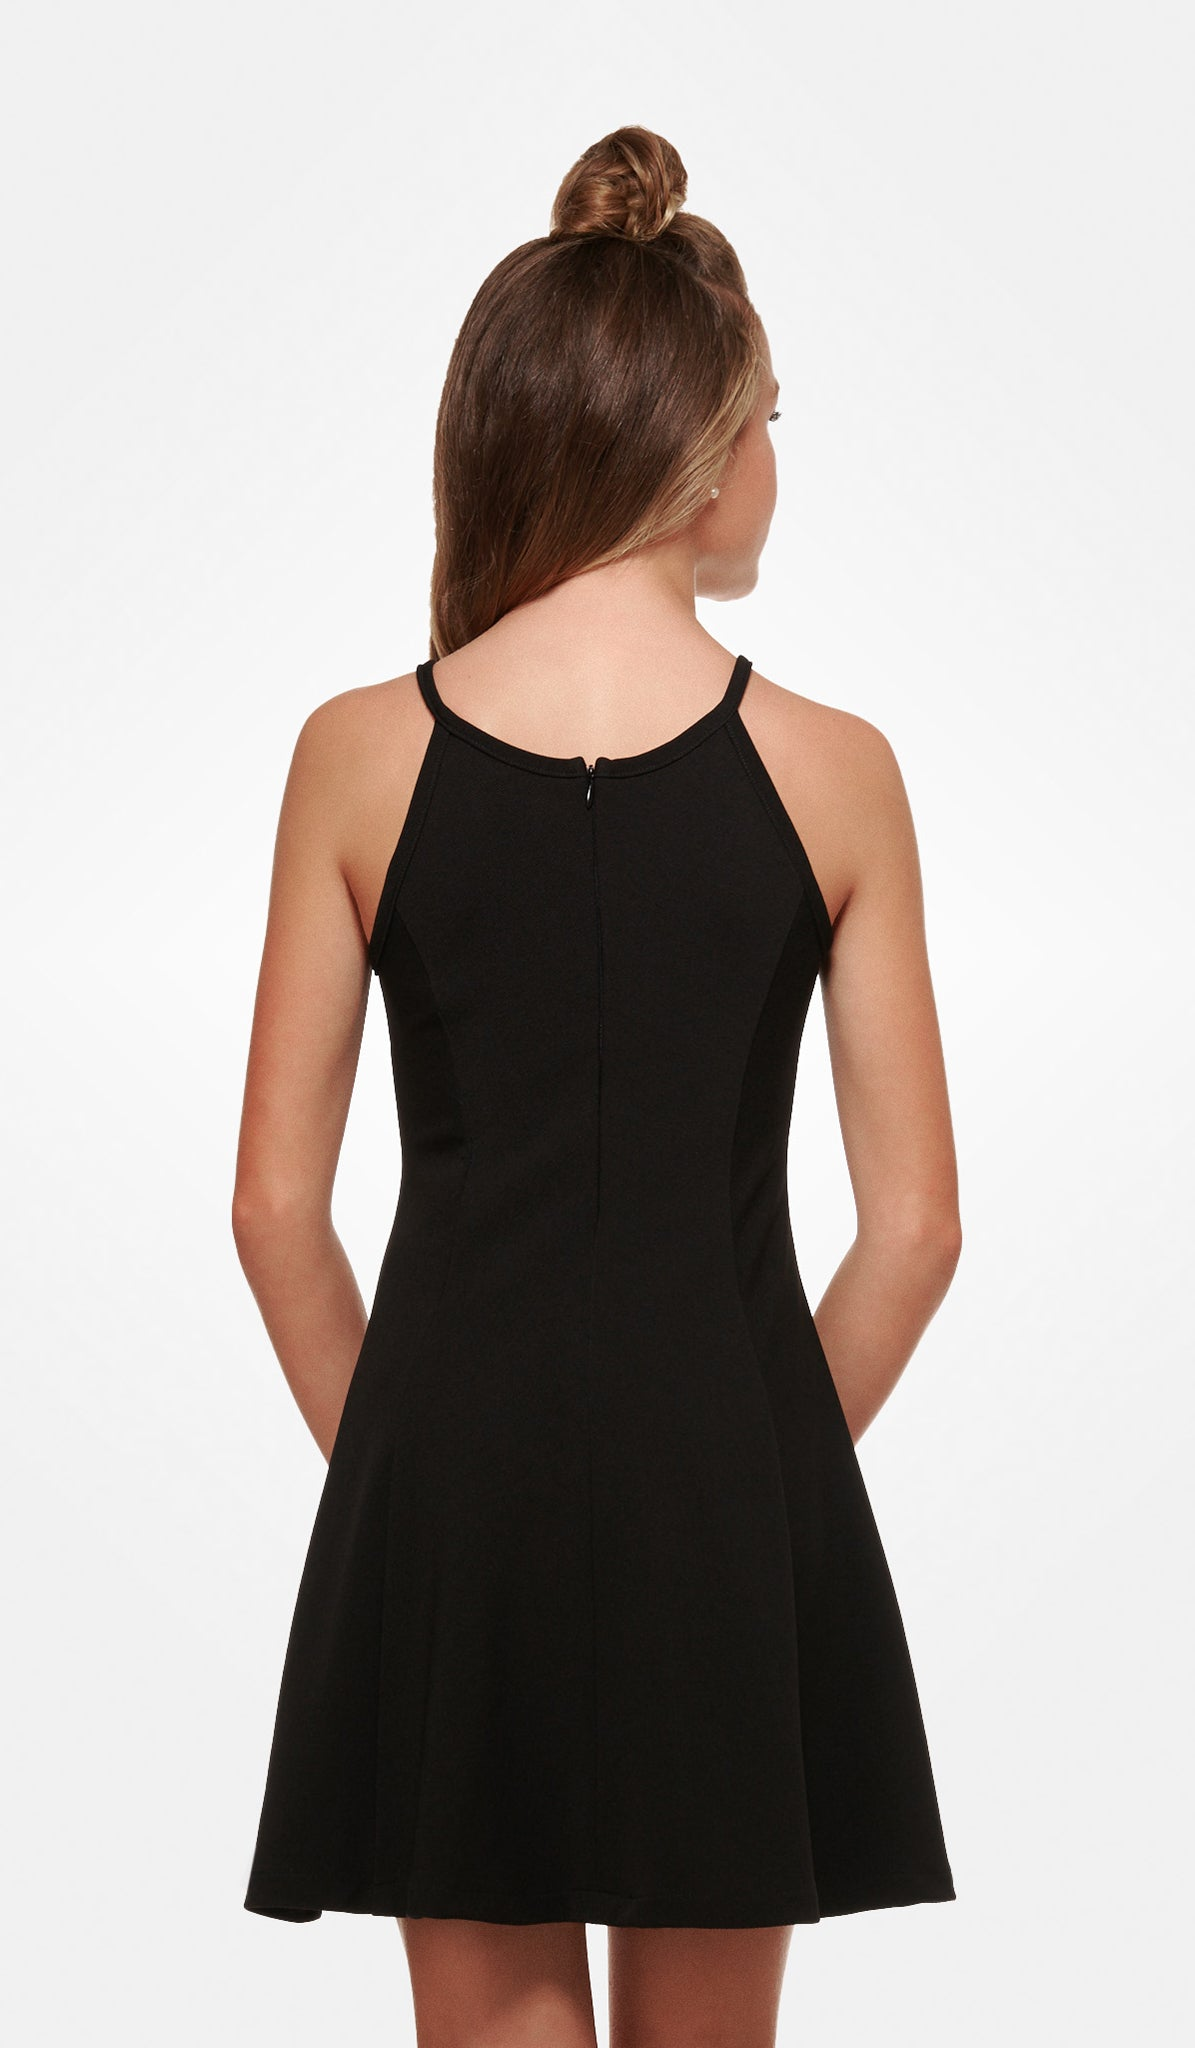 The Sally Miller Serena Dress - Black textured stretch knit fit and flare dress with zipper at back